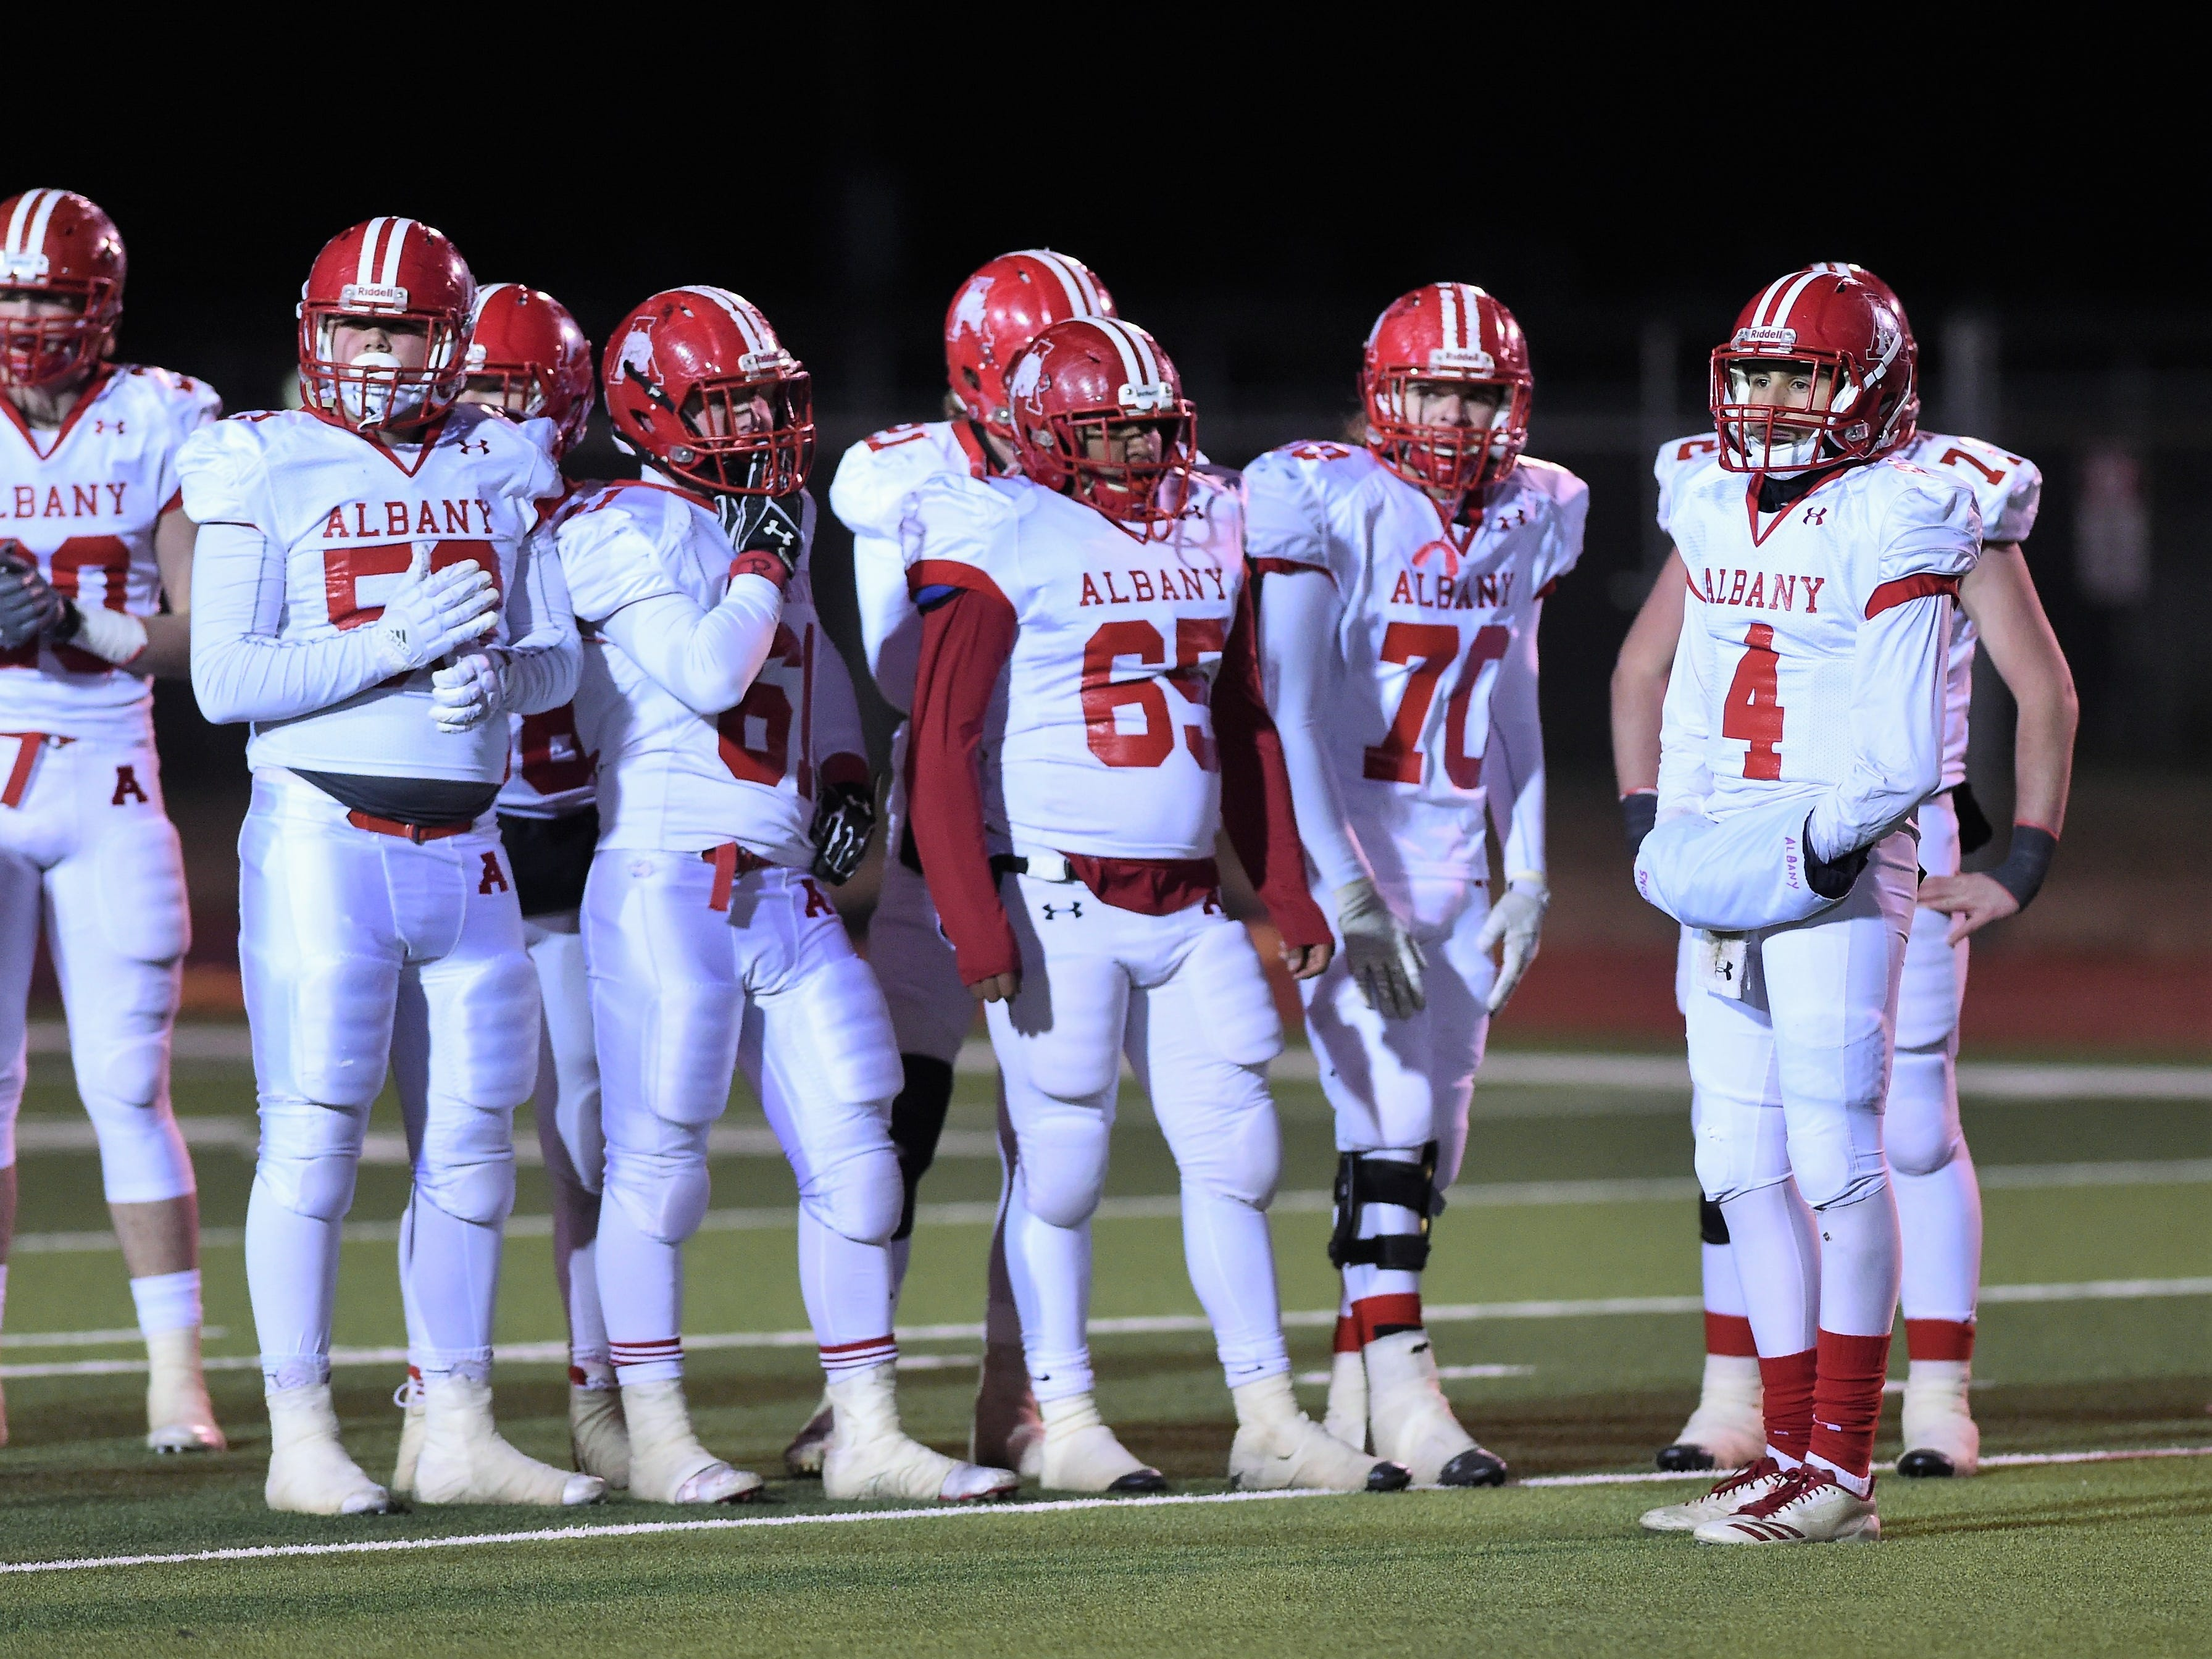 The Albany offense looks to the sideline for a play call against Gruver in the Class 2A Division II state semifinal at Sherwood Memorial Bulldog Stadium in Plainview on Thursday, Dec. 13, 2018.